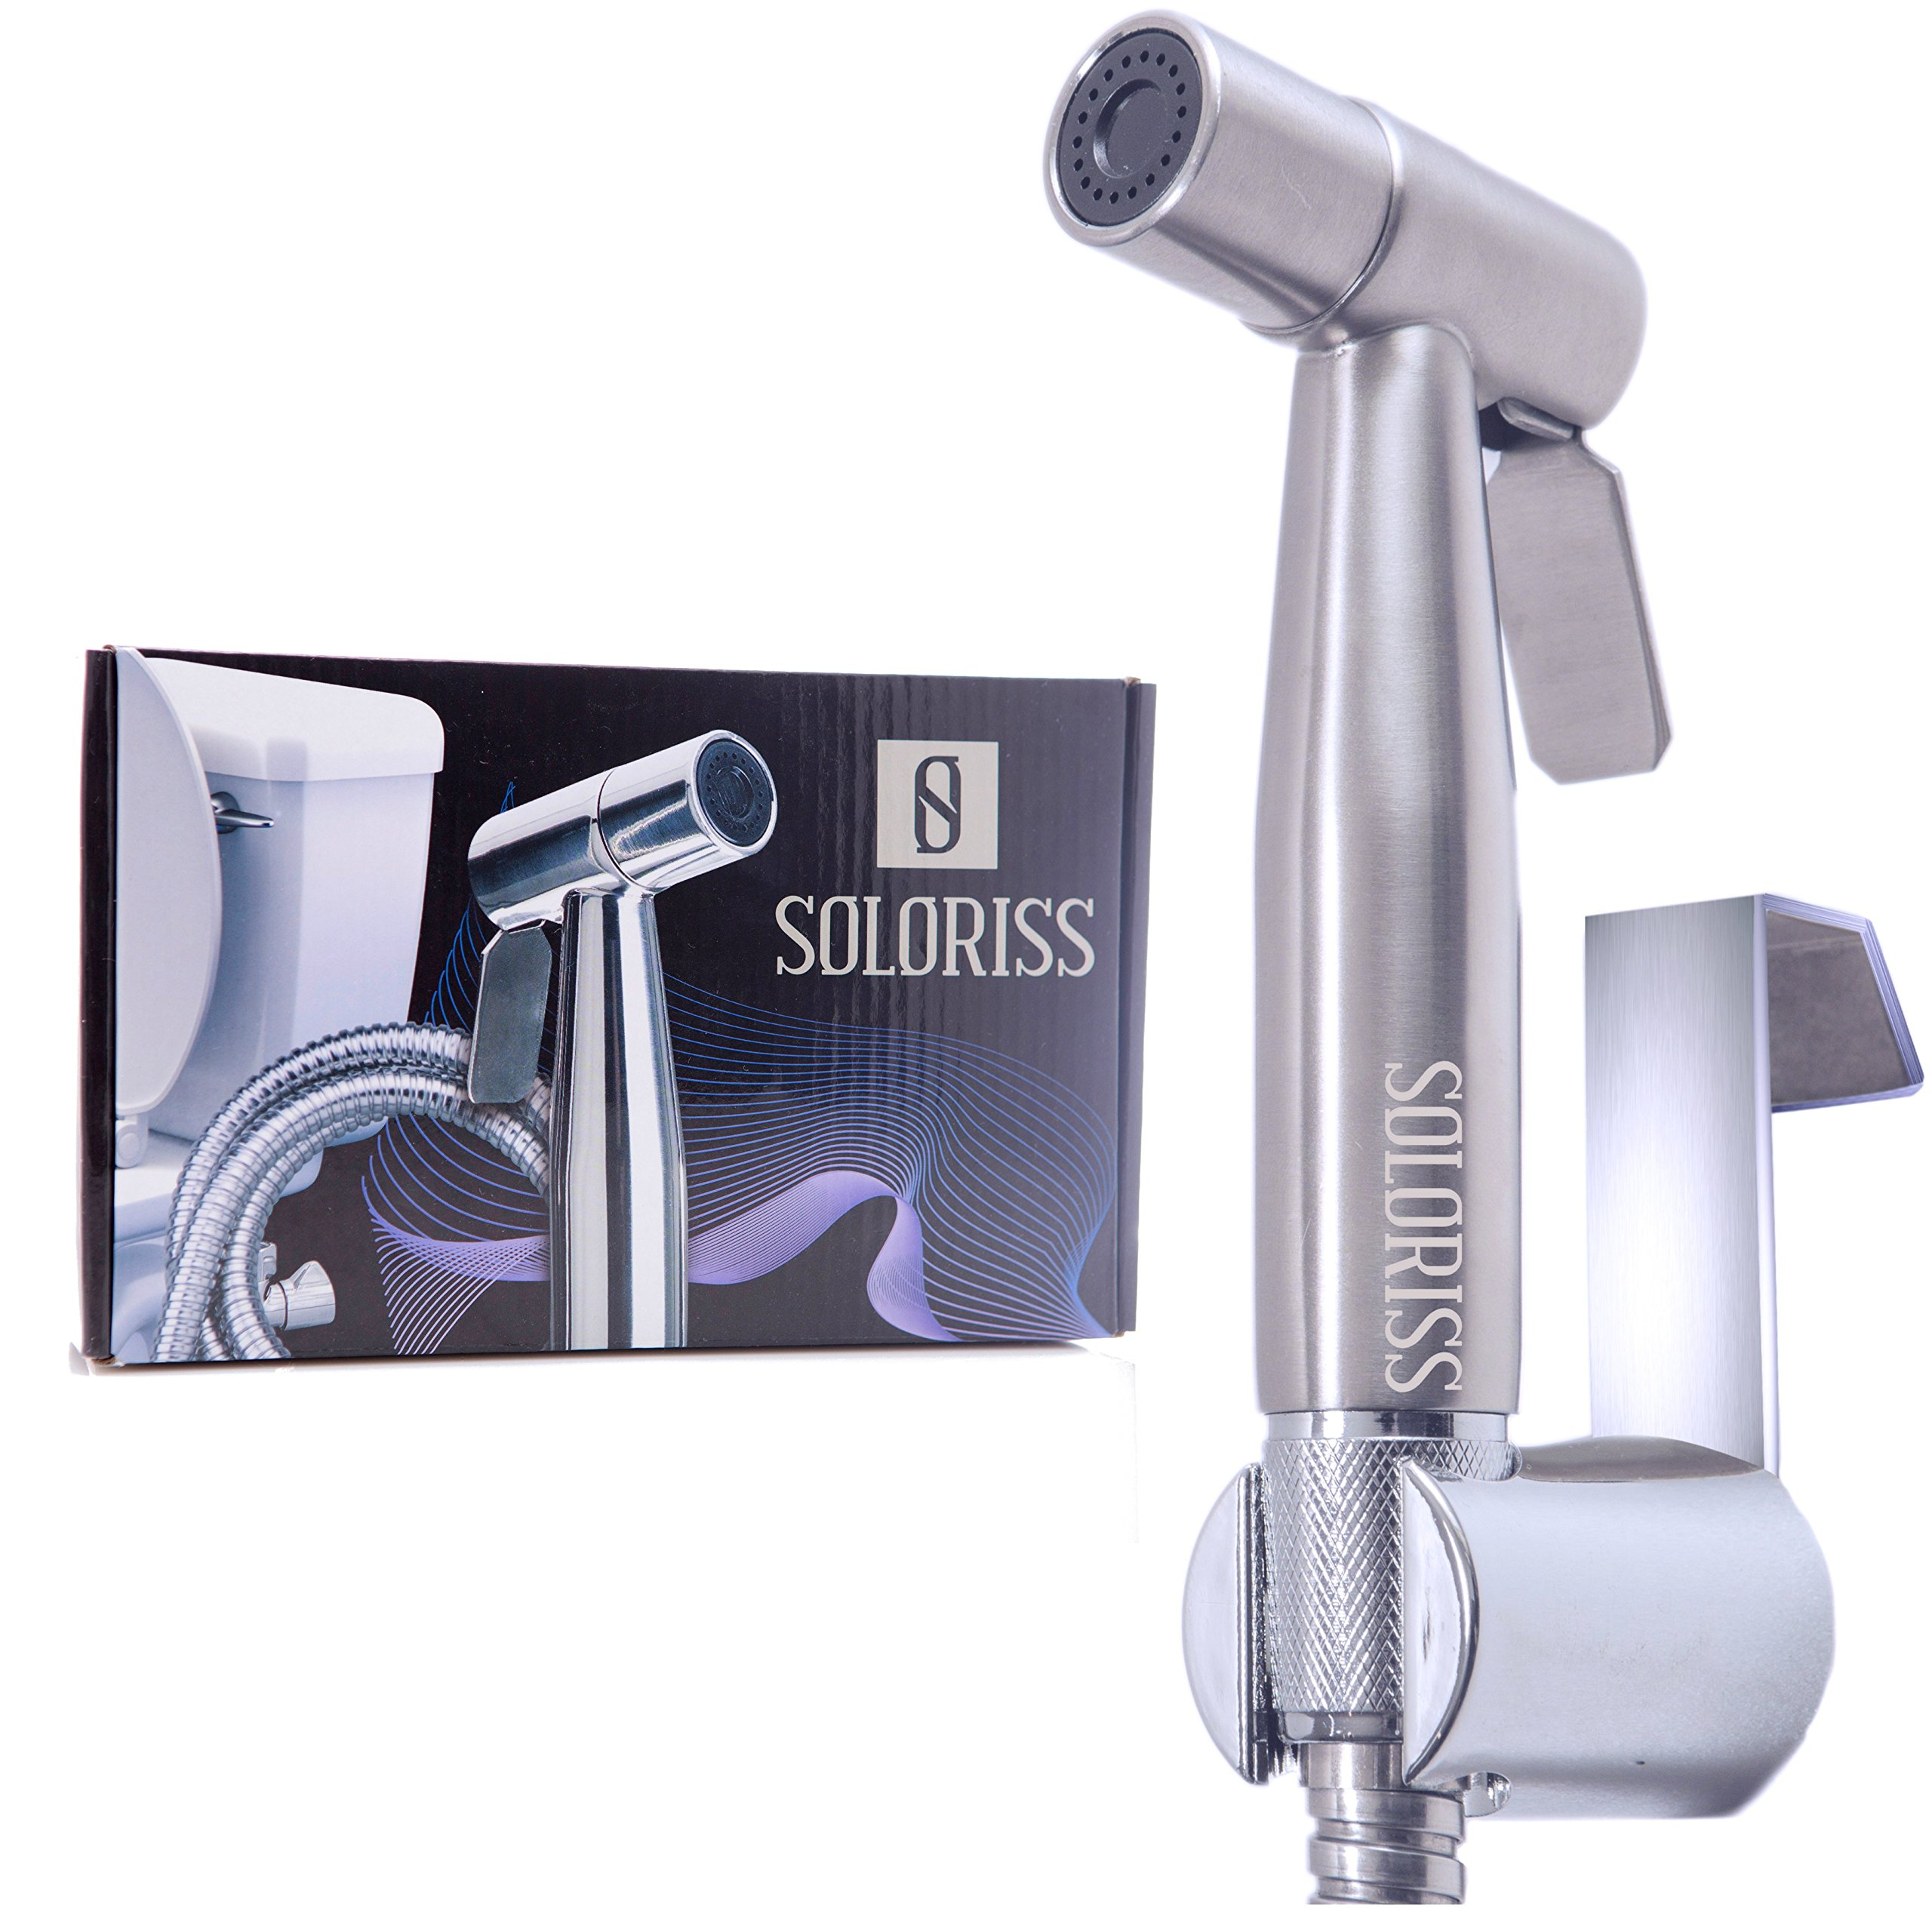 Original Cloth Diaper Sprayer with Adjustable Pressure Control by Soloriss - Stainless Steel Premium Hand Held Bidet and Diaper Sprayer for Toilet - Easy to Install and Use